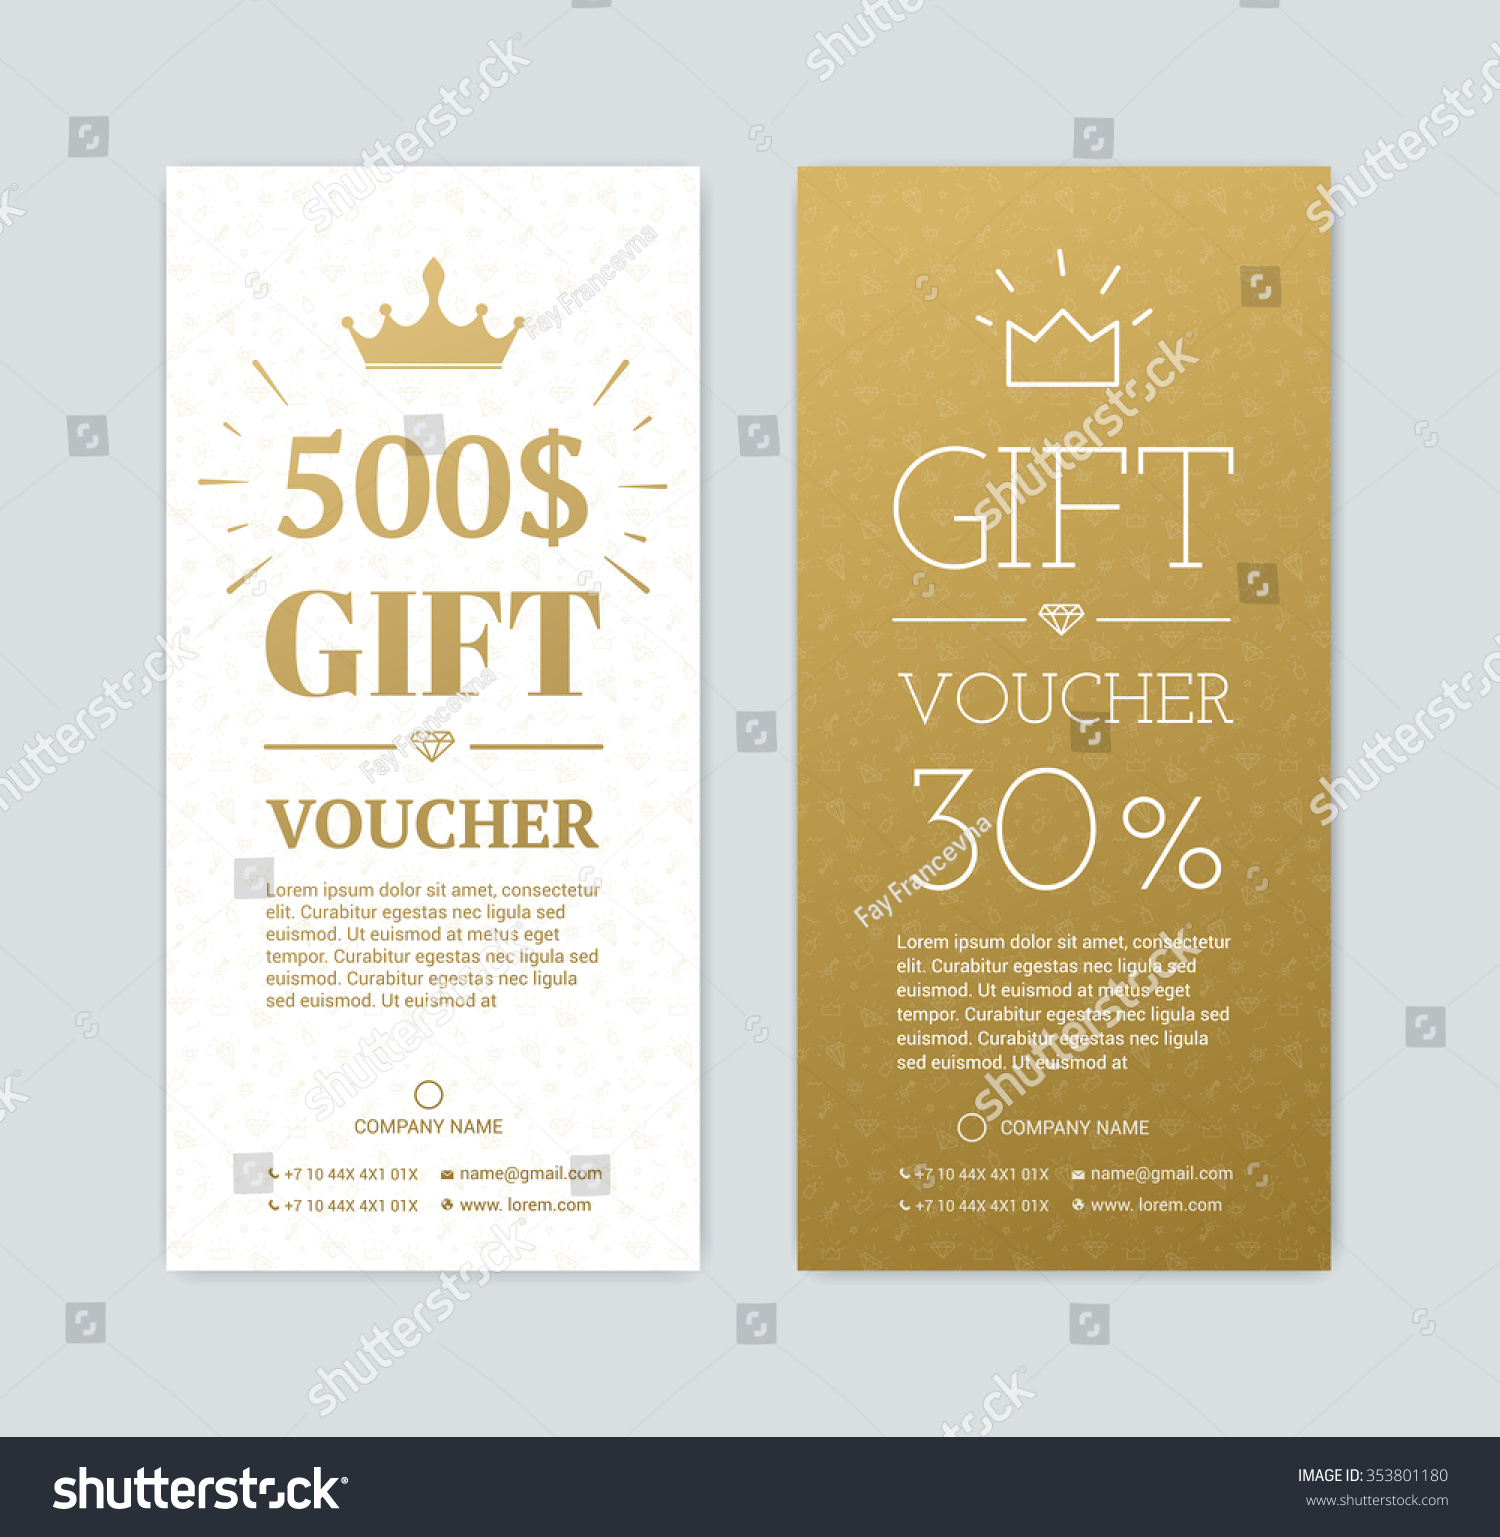 Gift voucher for shopping in the store Gold card for a gift for the holidays Exclusive certificate for a gift